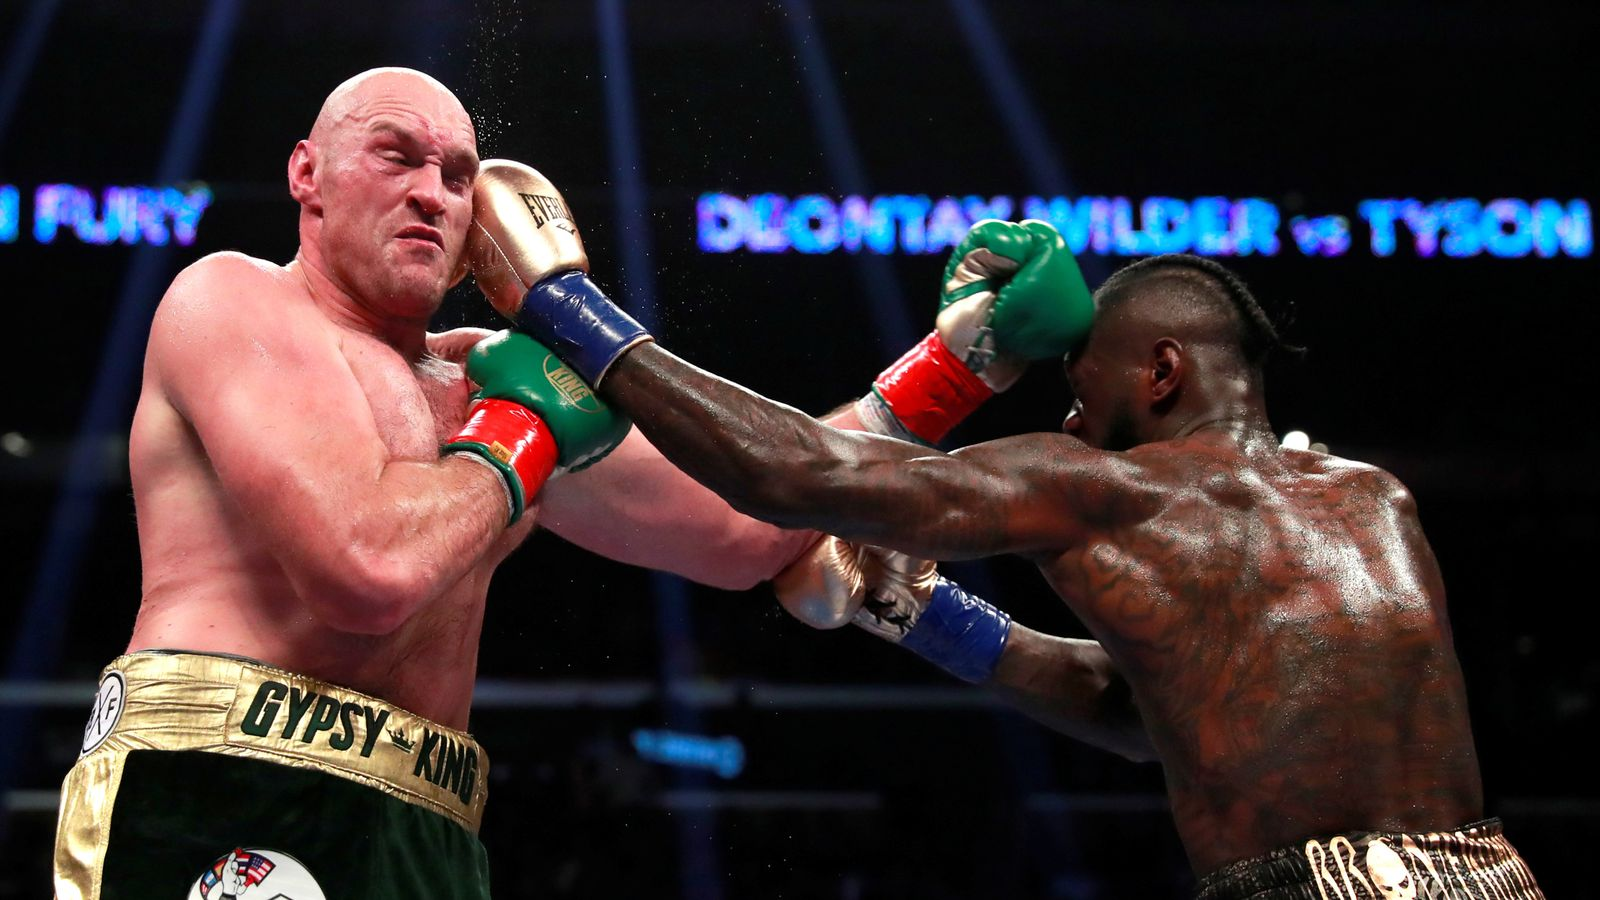 Tyson Fury draws with Deontay Wilder after Briton knocked down twice in  world title fight | US News | Sky News